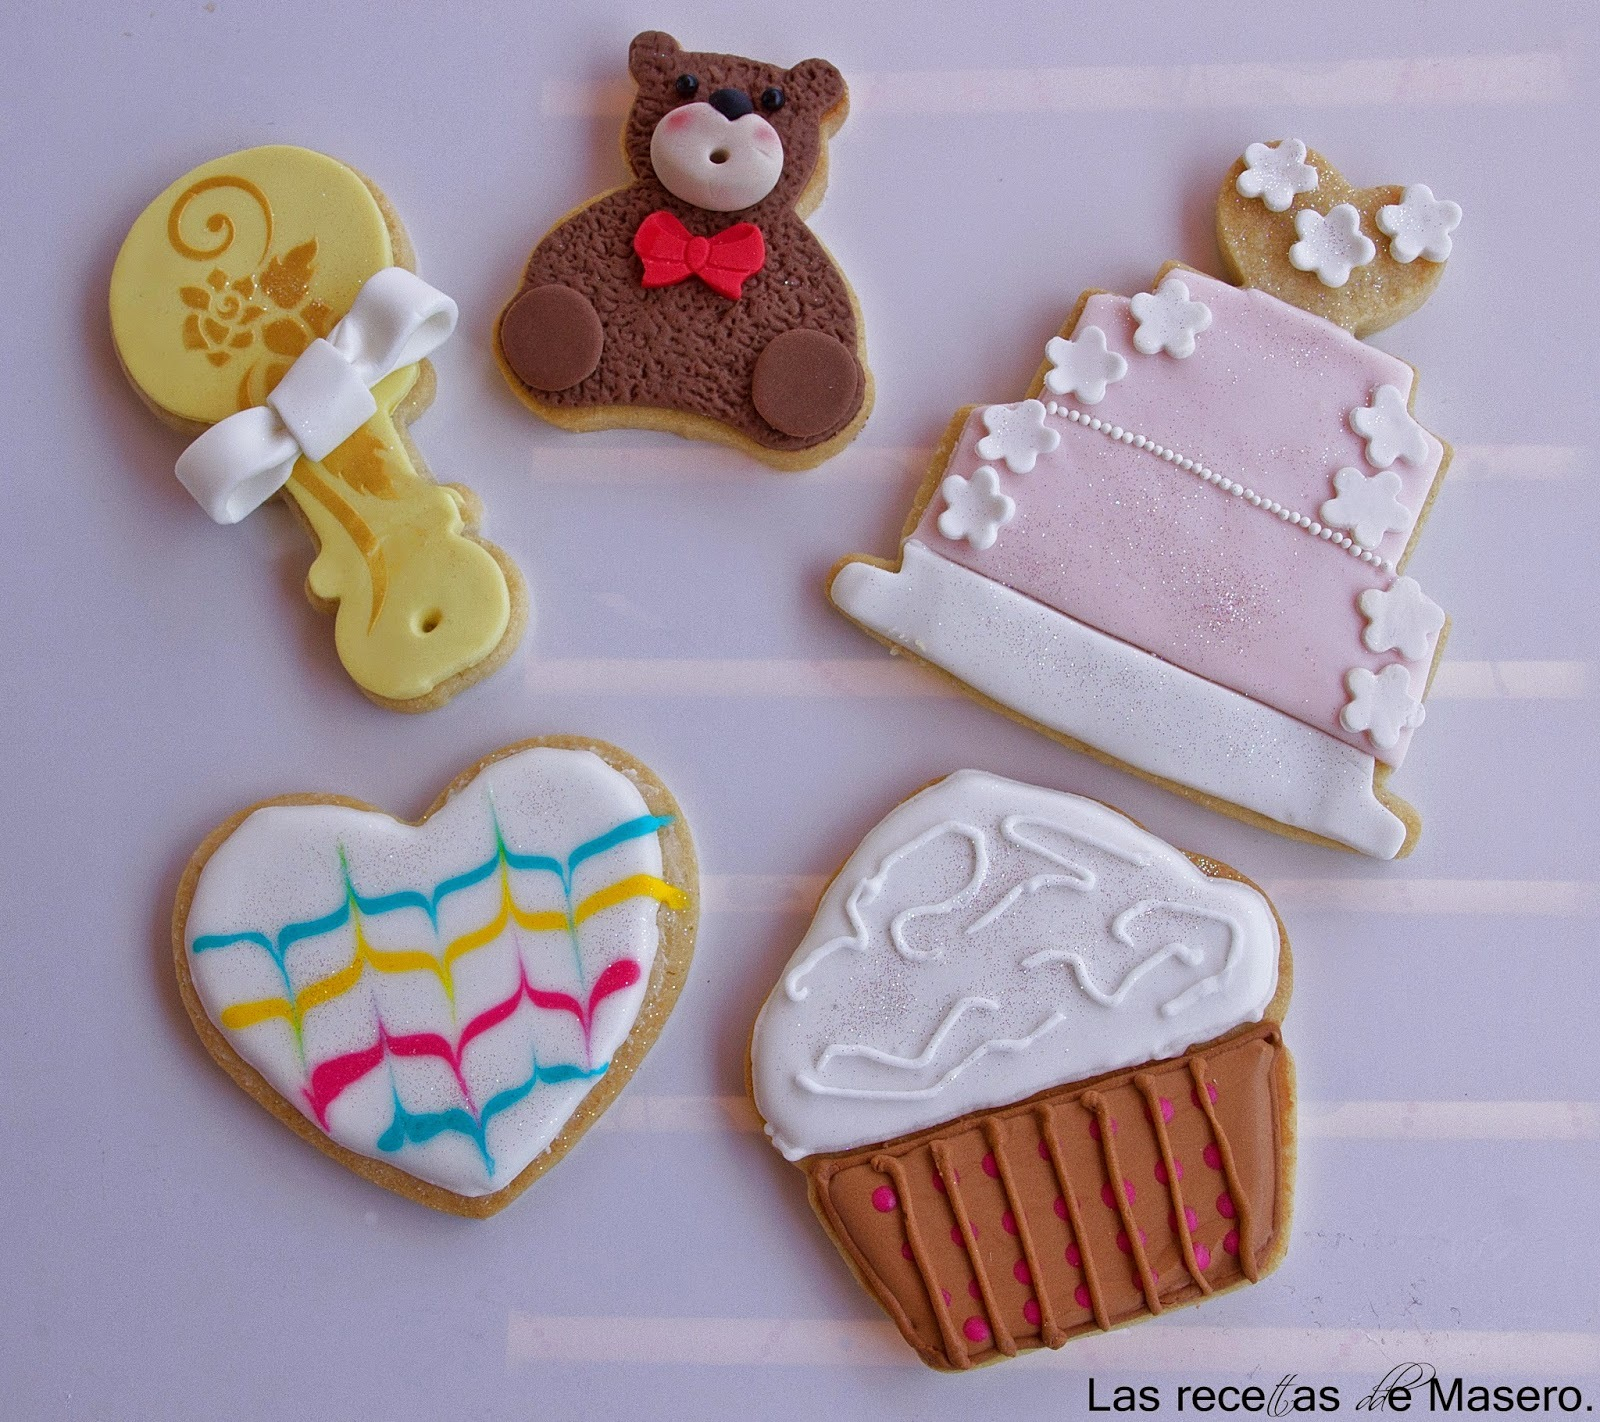 Galletas de mantequilla decoradas con glasa real y fondant